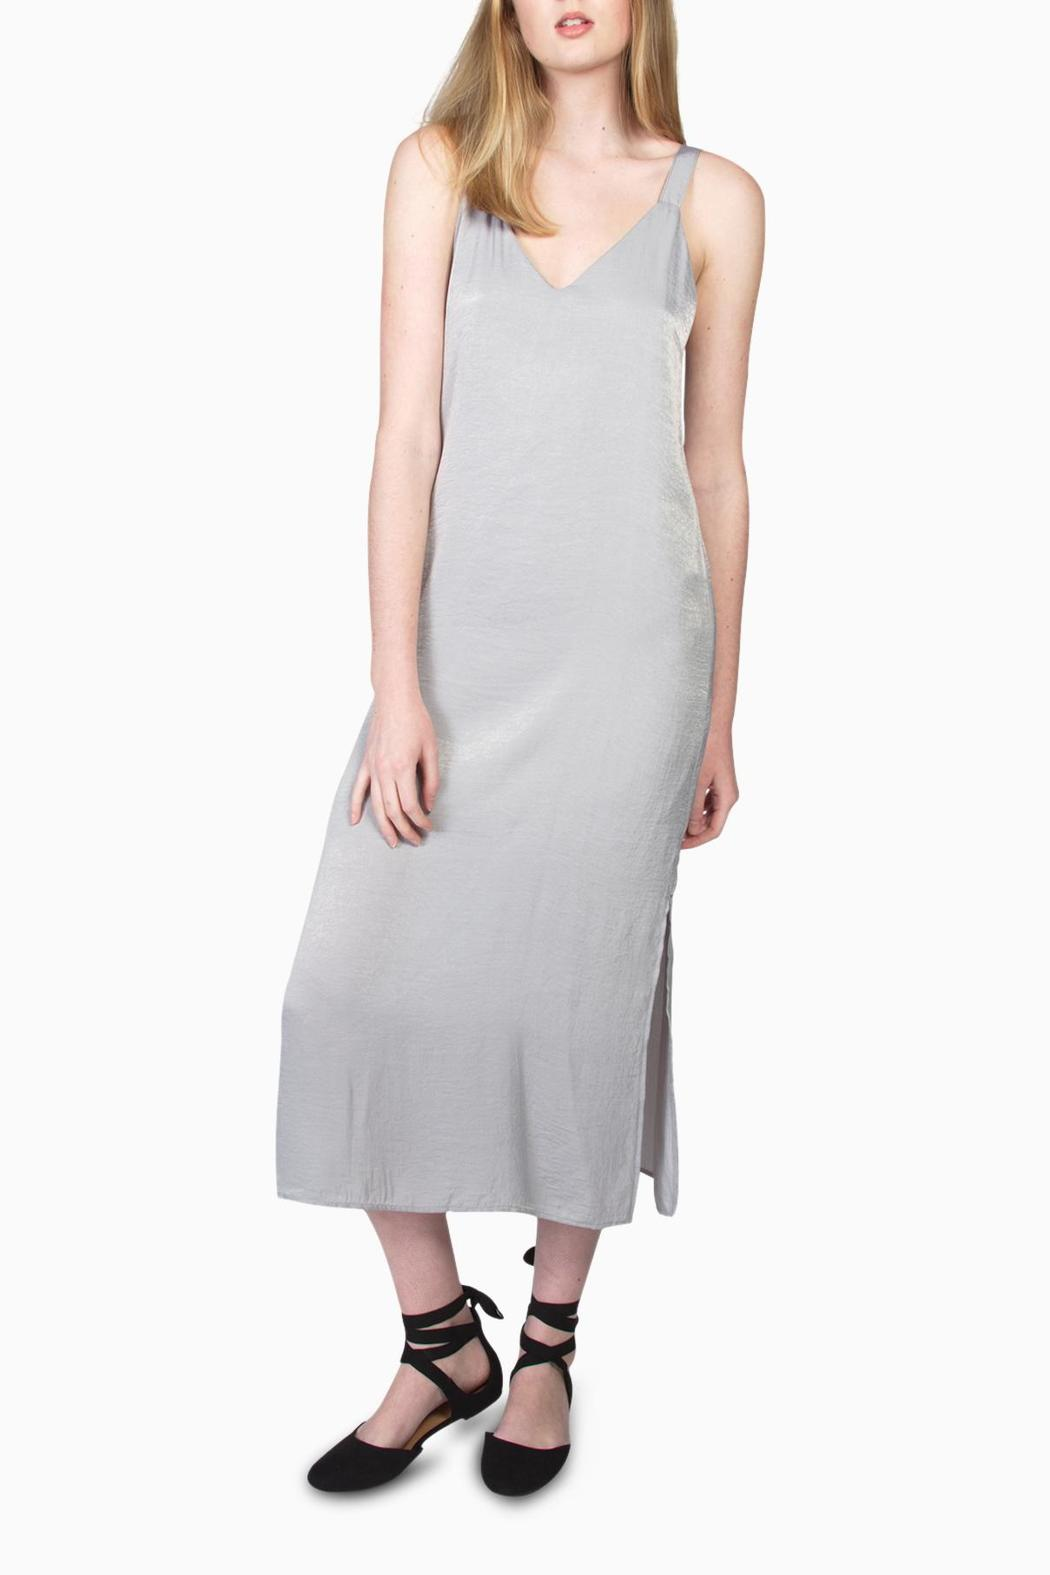 Final Touch Satin Midi Dress - Main Image